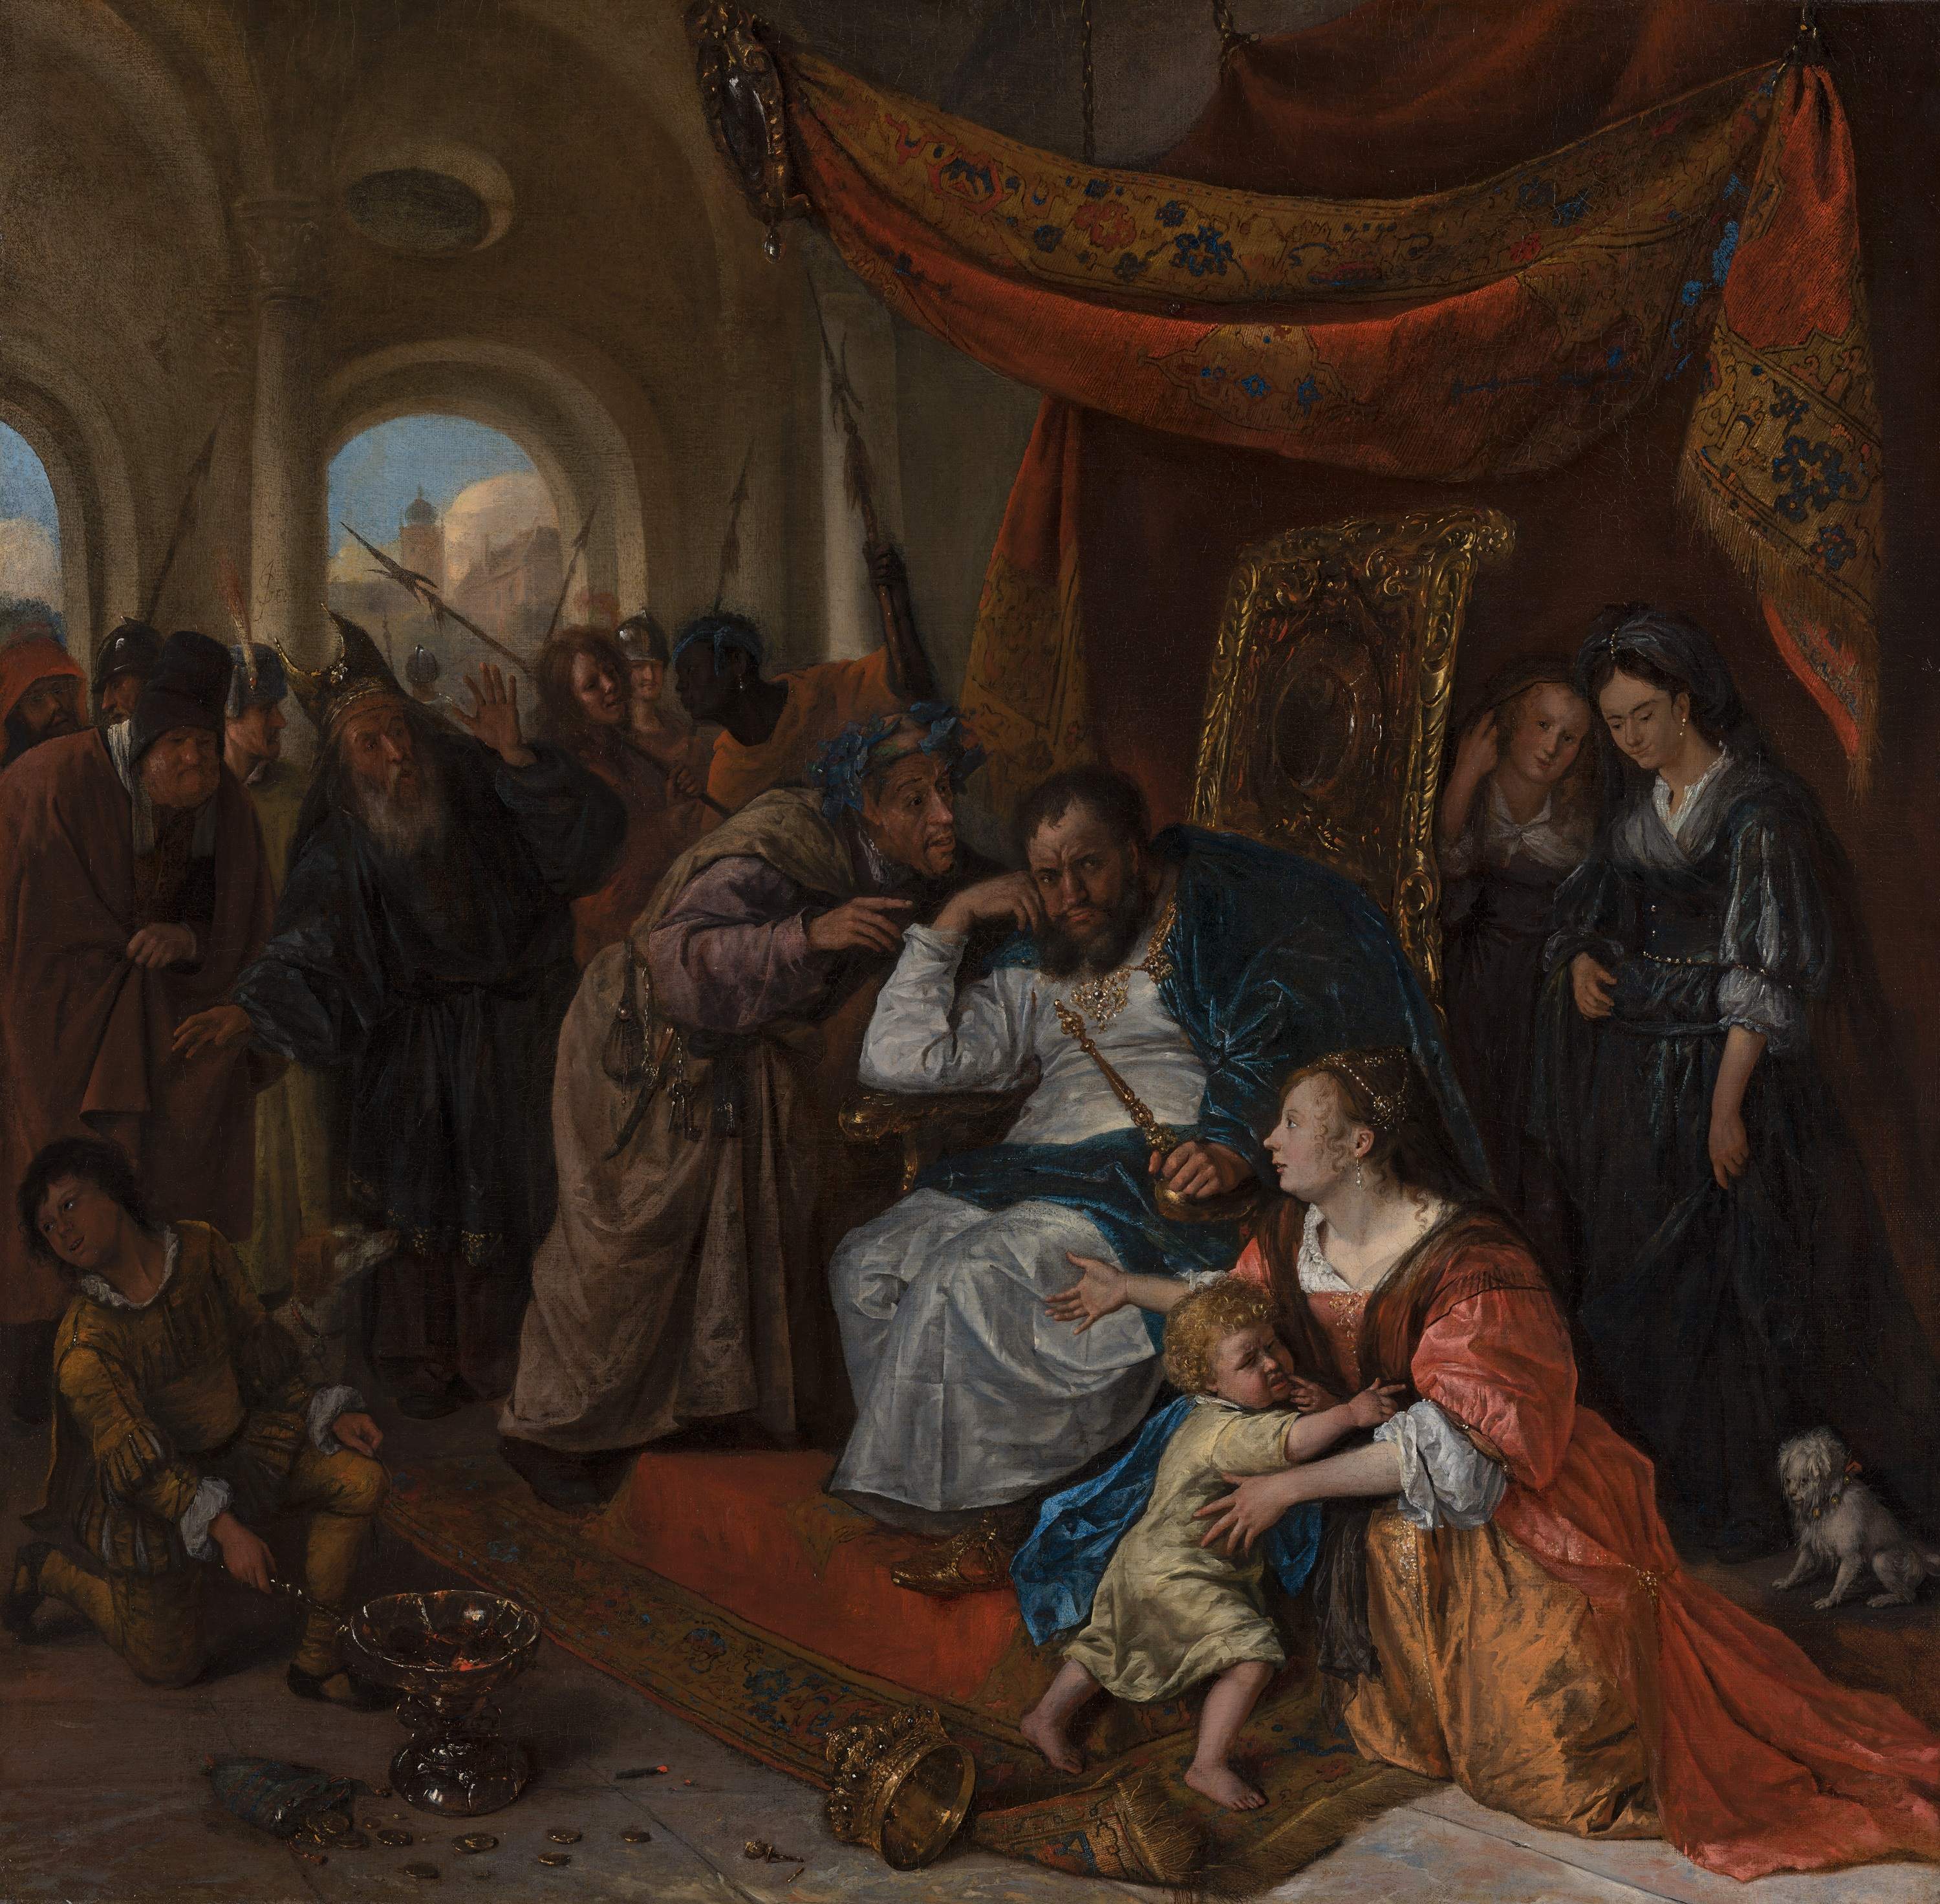 File:Jan Steen (1626-1679), Moses and Pharaoh's Crown, c